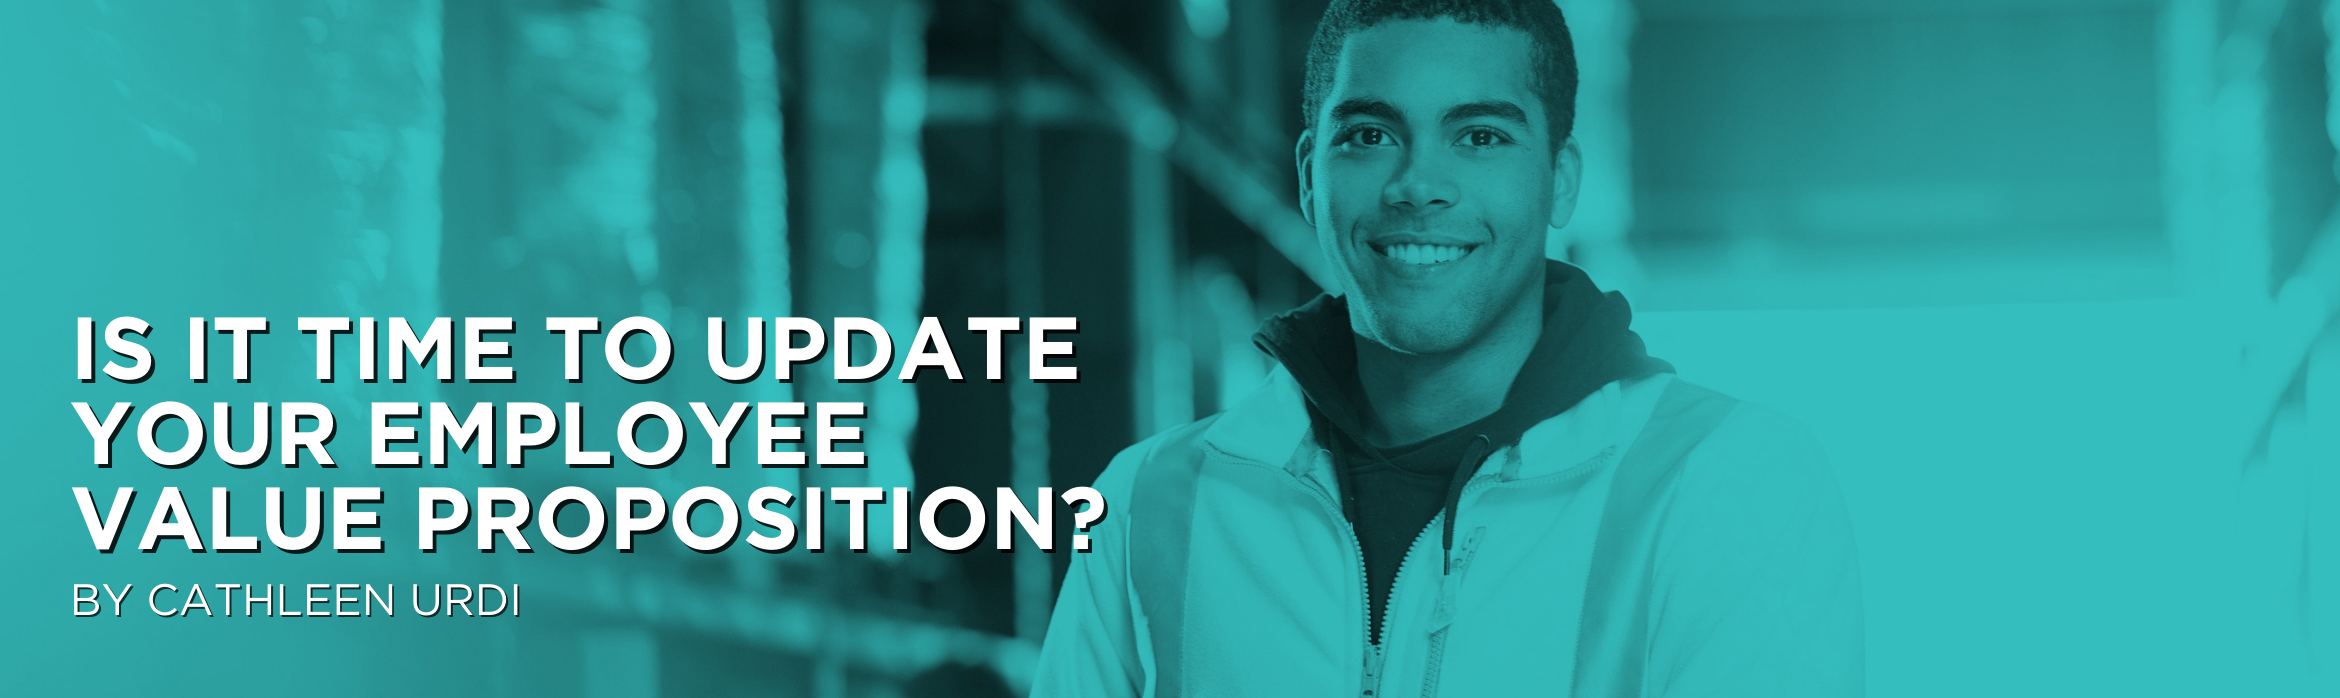 Is it time to update your Employee Value Proposition?